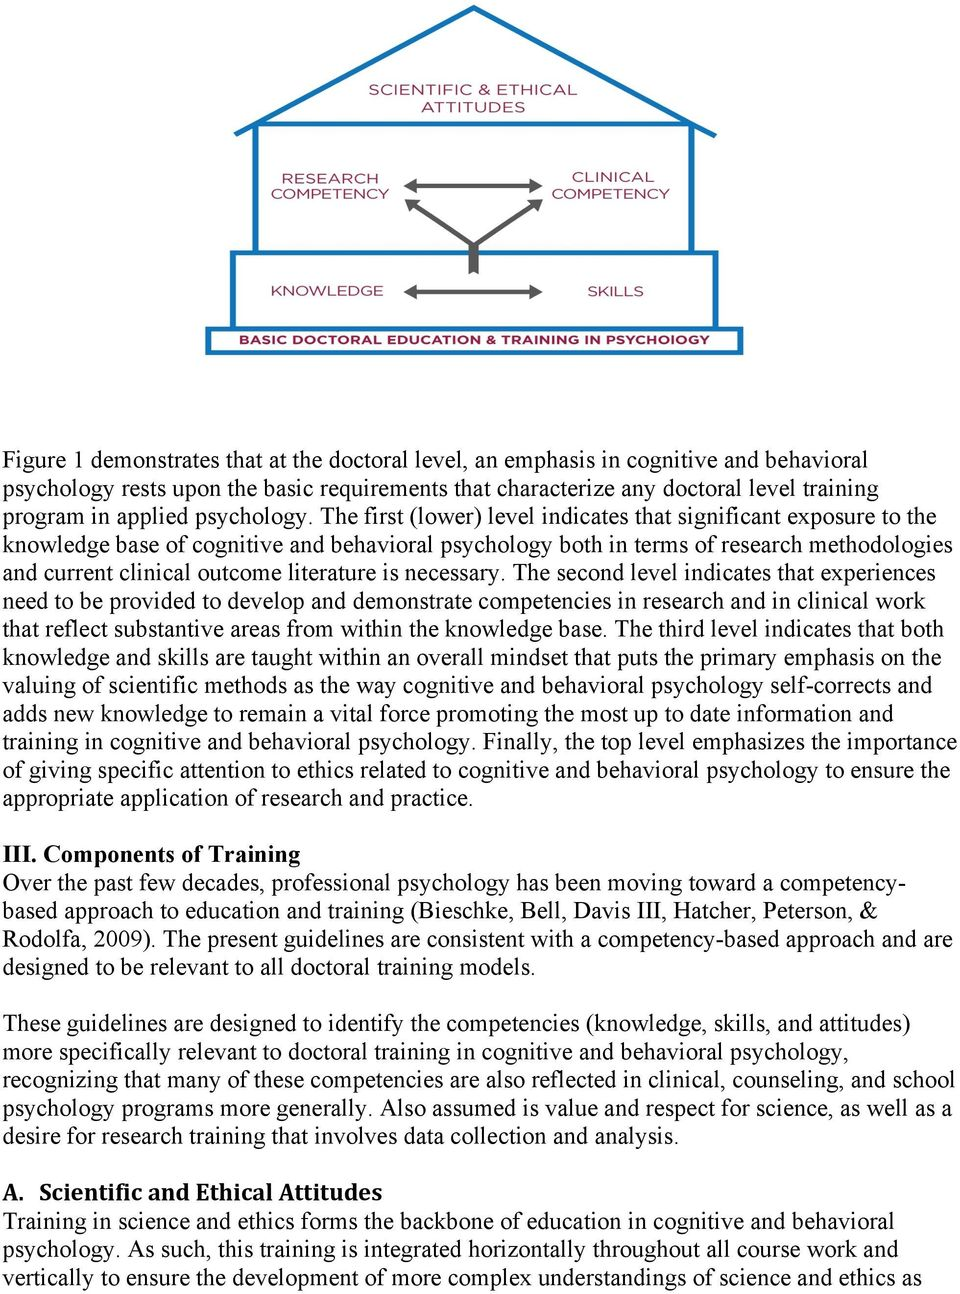 The first (lower) level indicates that significant exposure to the knowledge base of cognitive and behavioral psychology both in terms of research methodologies and current clinical outcome